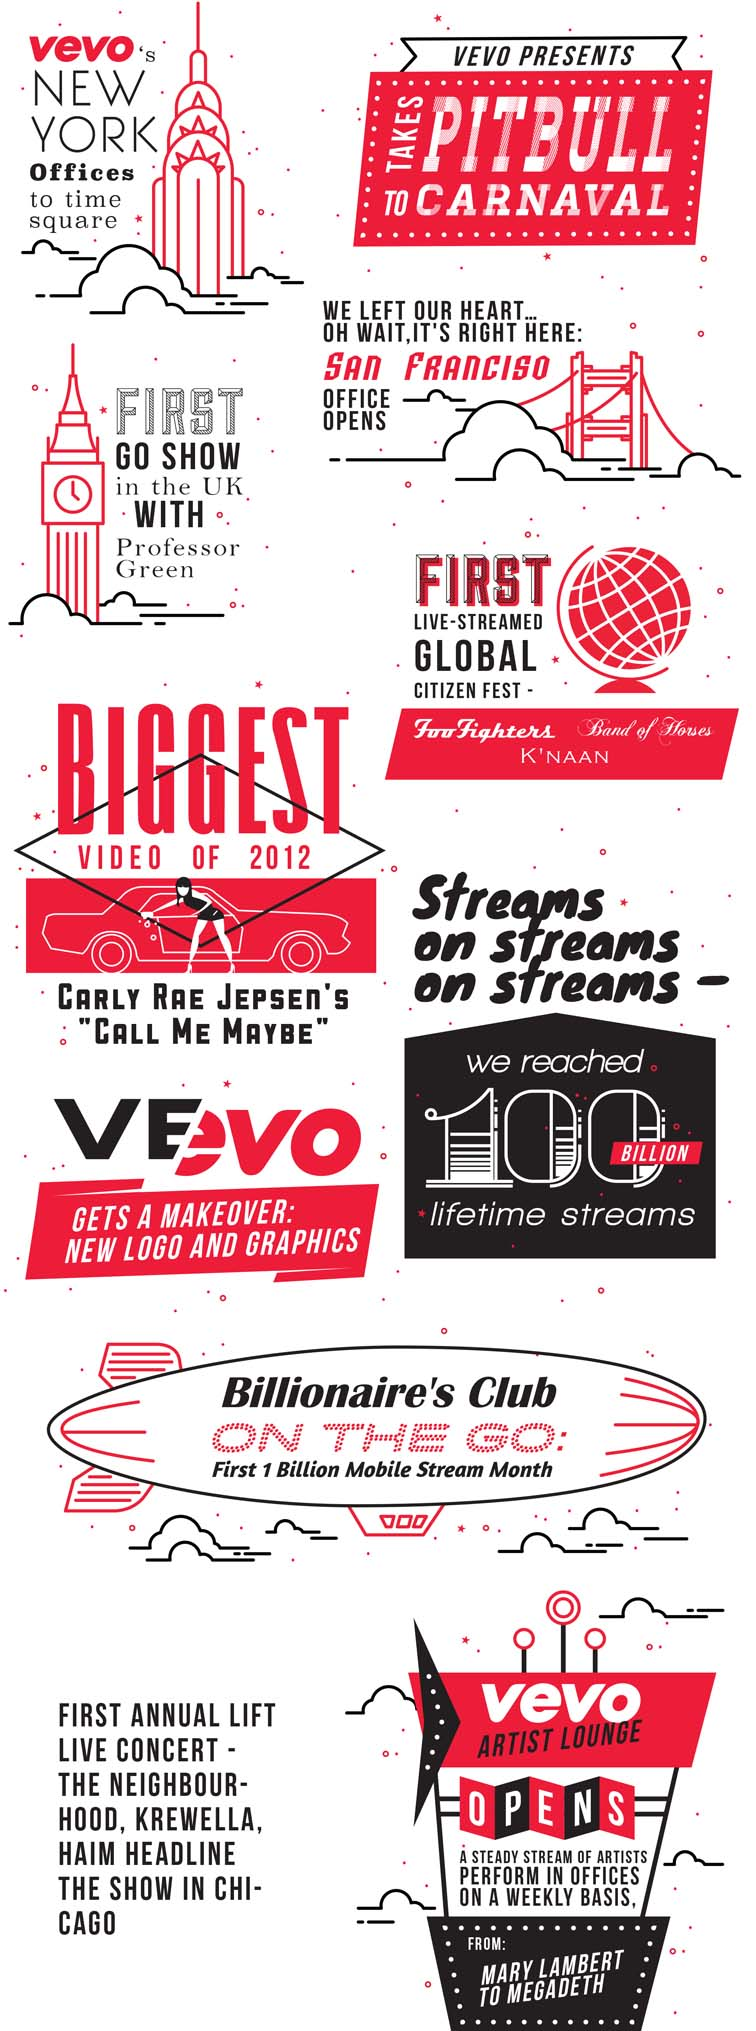 Vevo Fifth Anniversary Infographic 7012